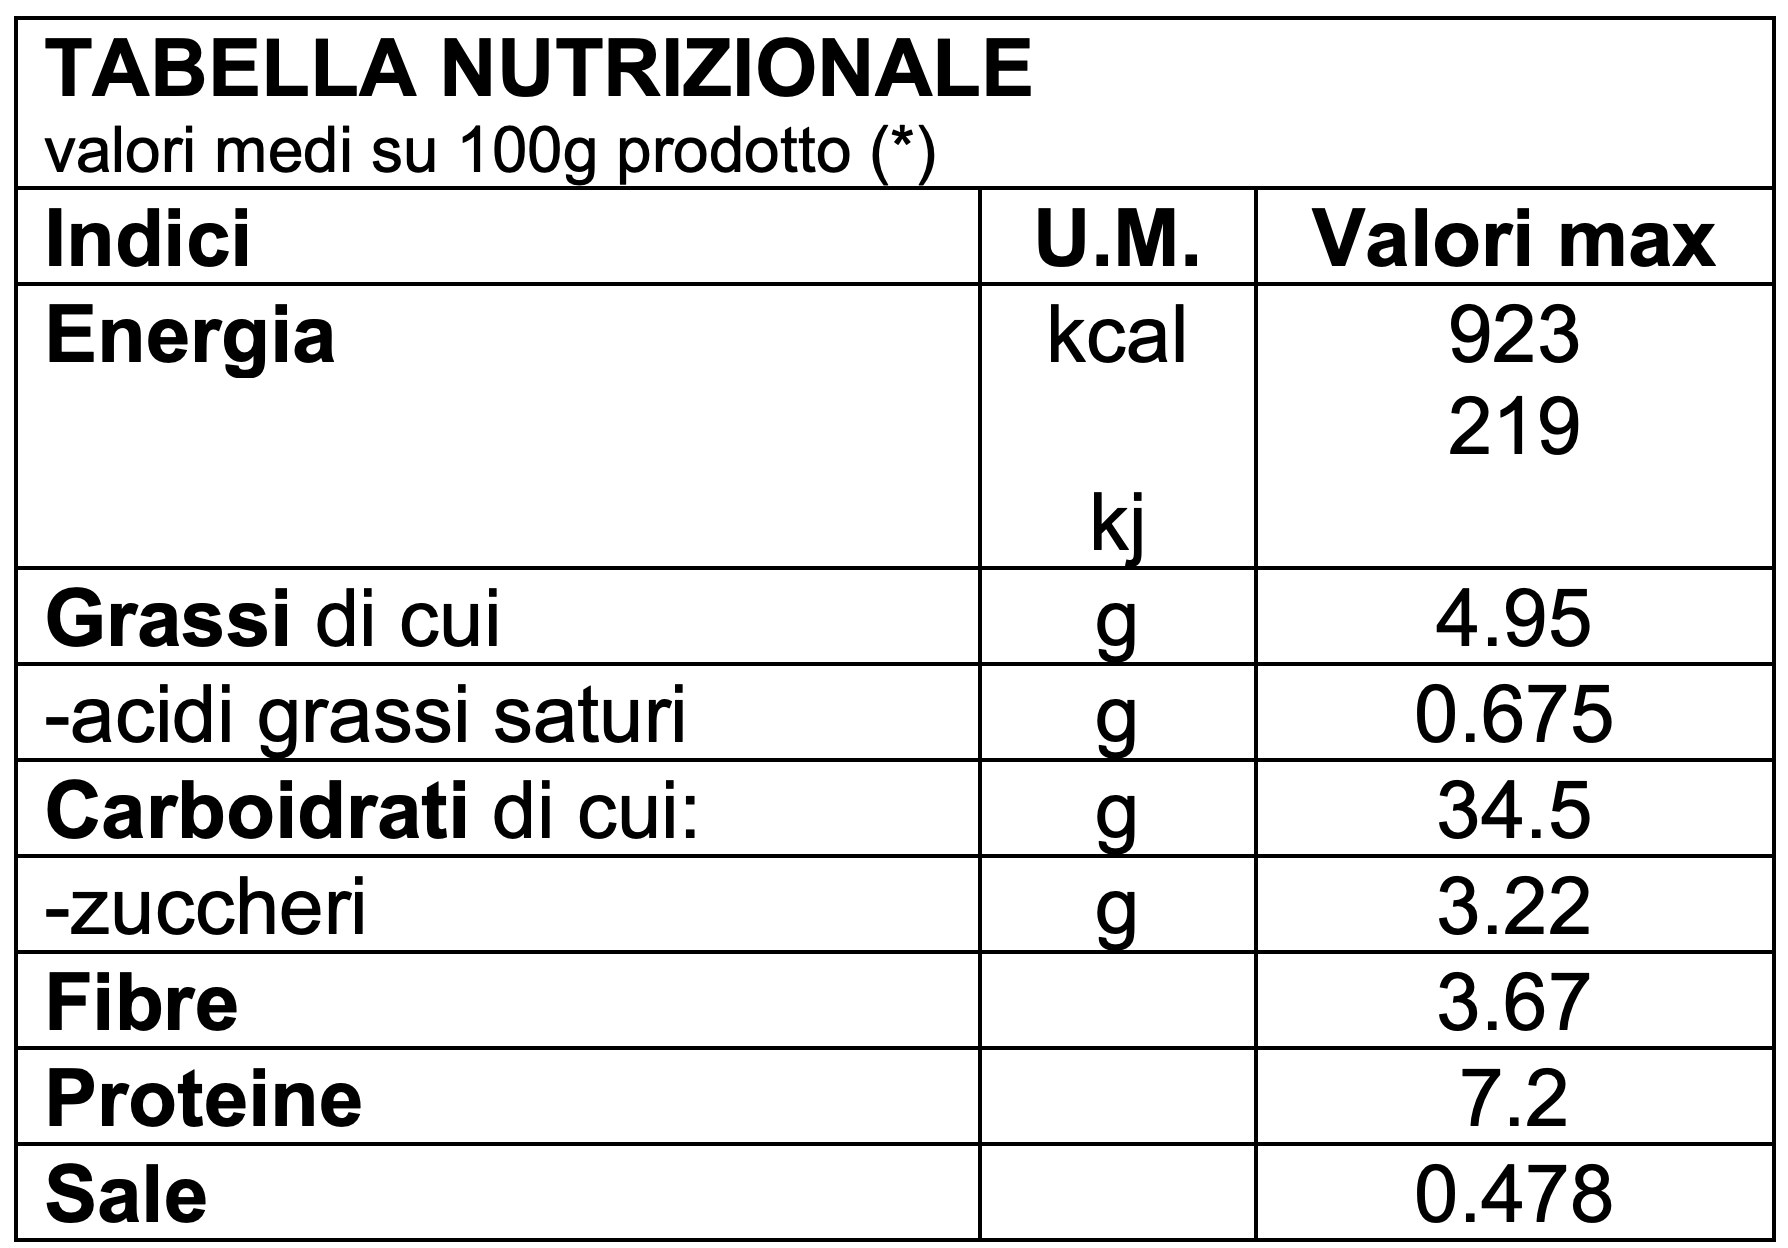 https://www.panem.it/wp-content/uploads/2019/12/tabella-nutrizionale-biologico-farro.png